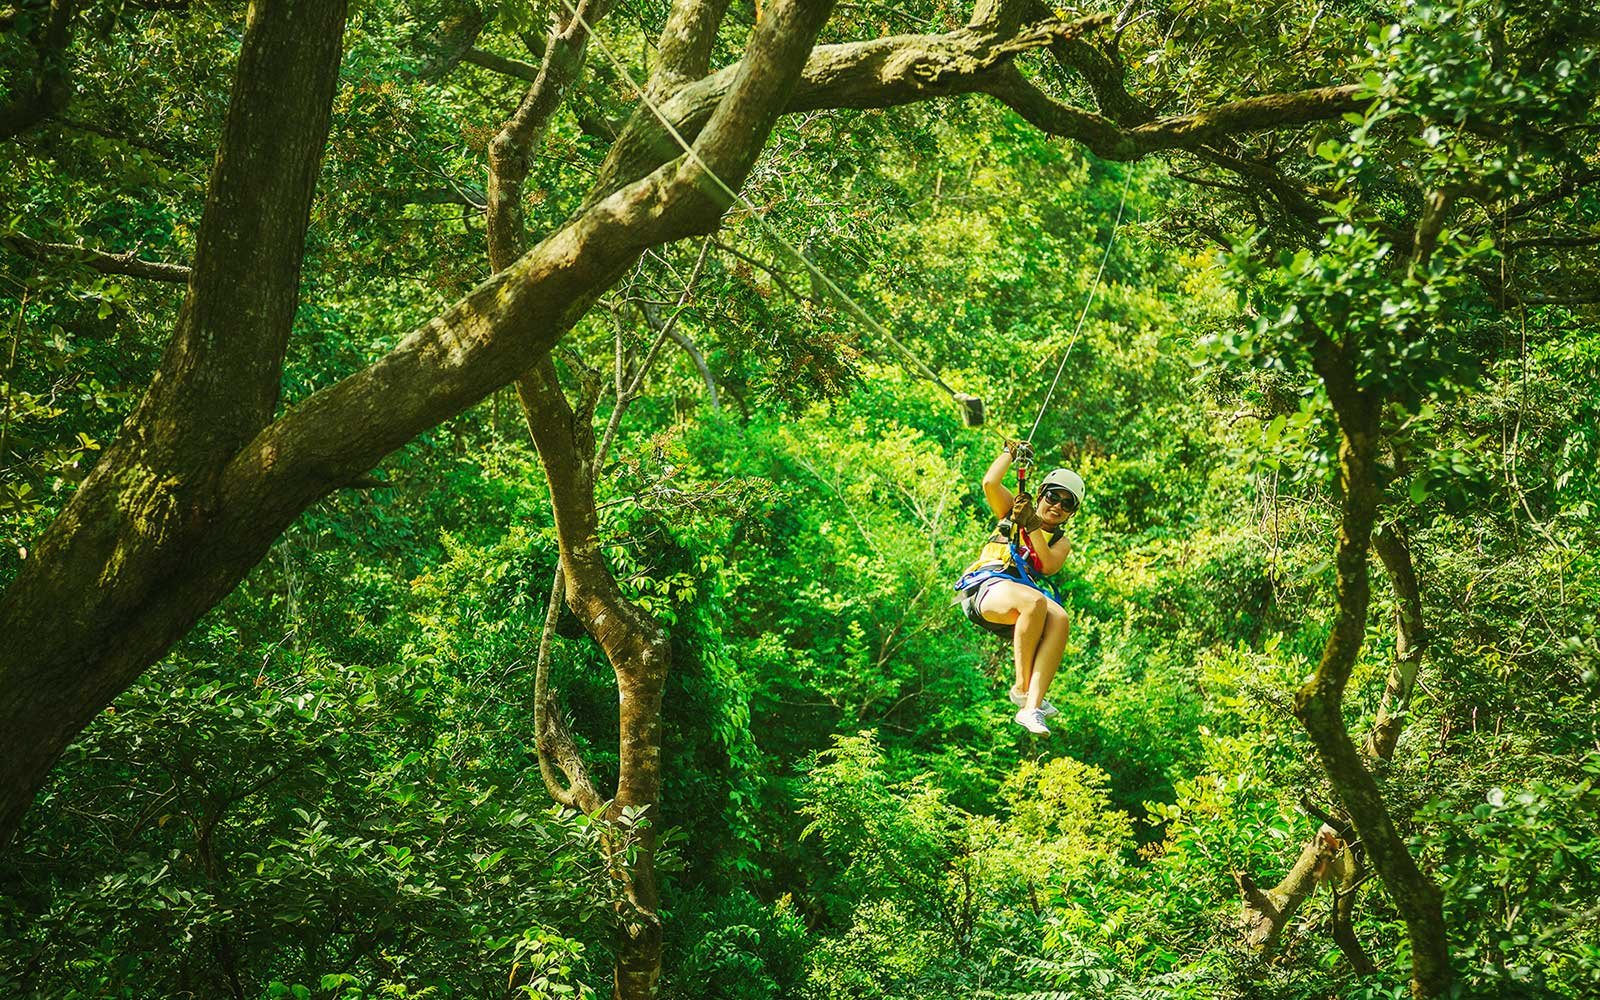 Zip Line in the Rainforest, Costa Rica